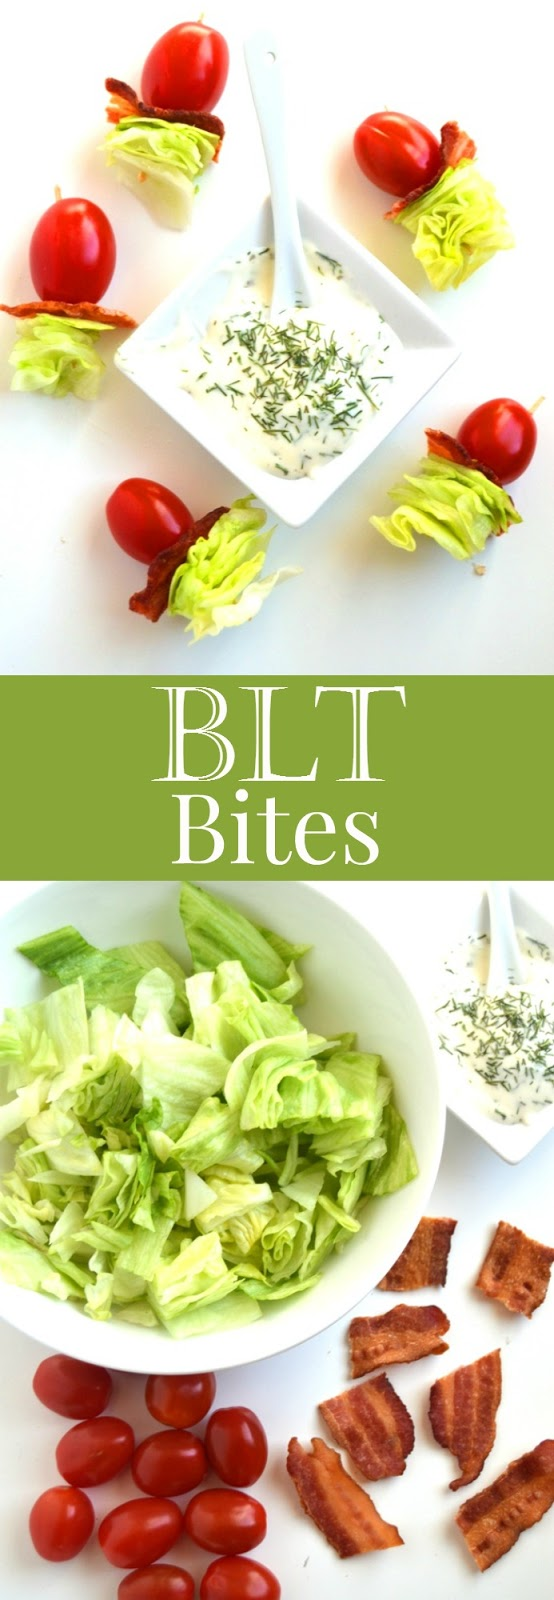 BLT Bites combine your favorite bacon, lettuce and tomato combination all on a stick with a creamy dressing for an easy and tasty appetizer that is ready in 10 minutes and is only 5 ingredients! www.nutritionistreviews.com